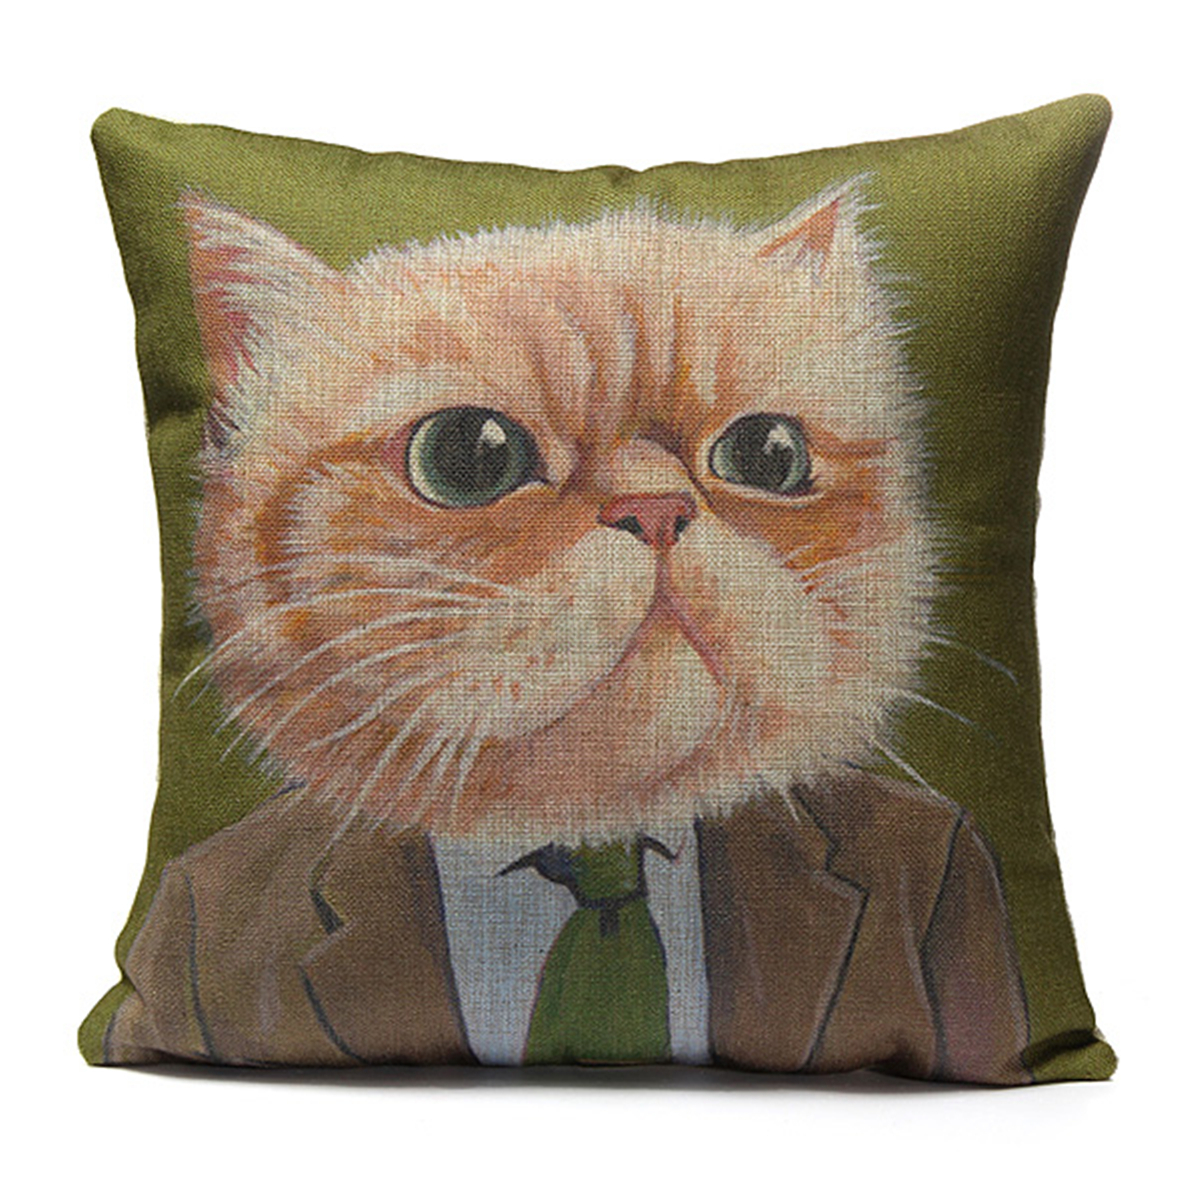 Vintage Animal Cat Cotton Pillow Case Sofa Throw Cushion Cover Home Car Decor eBay